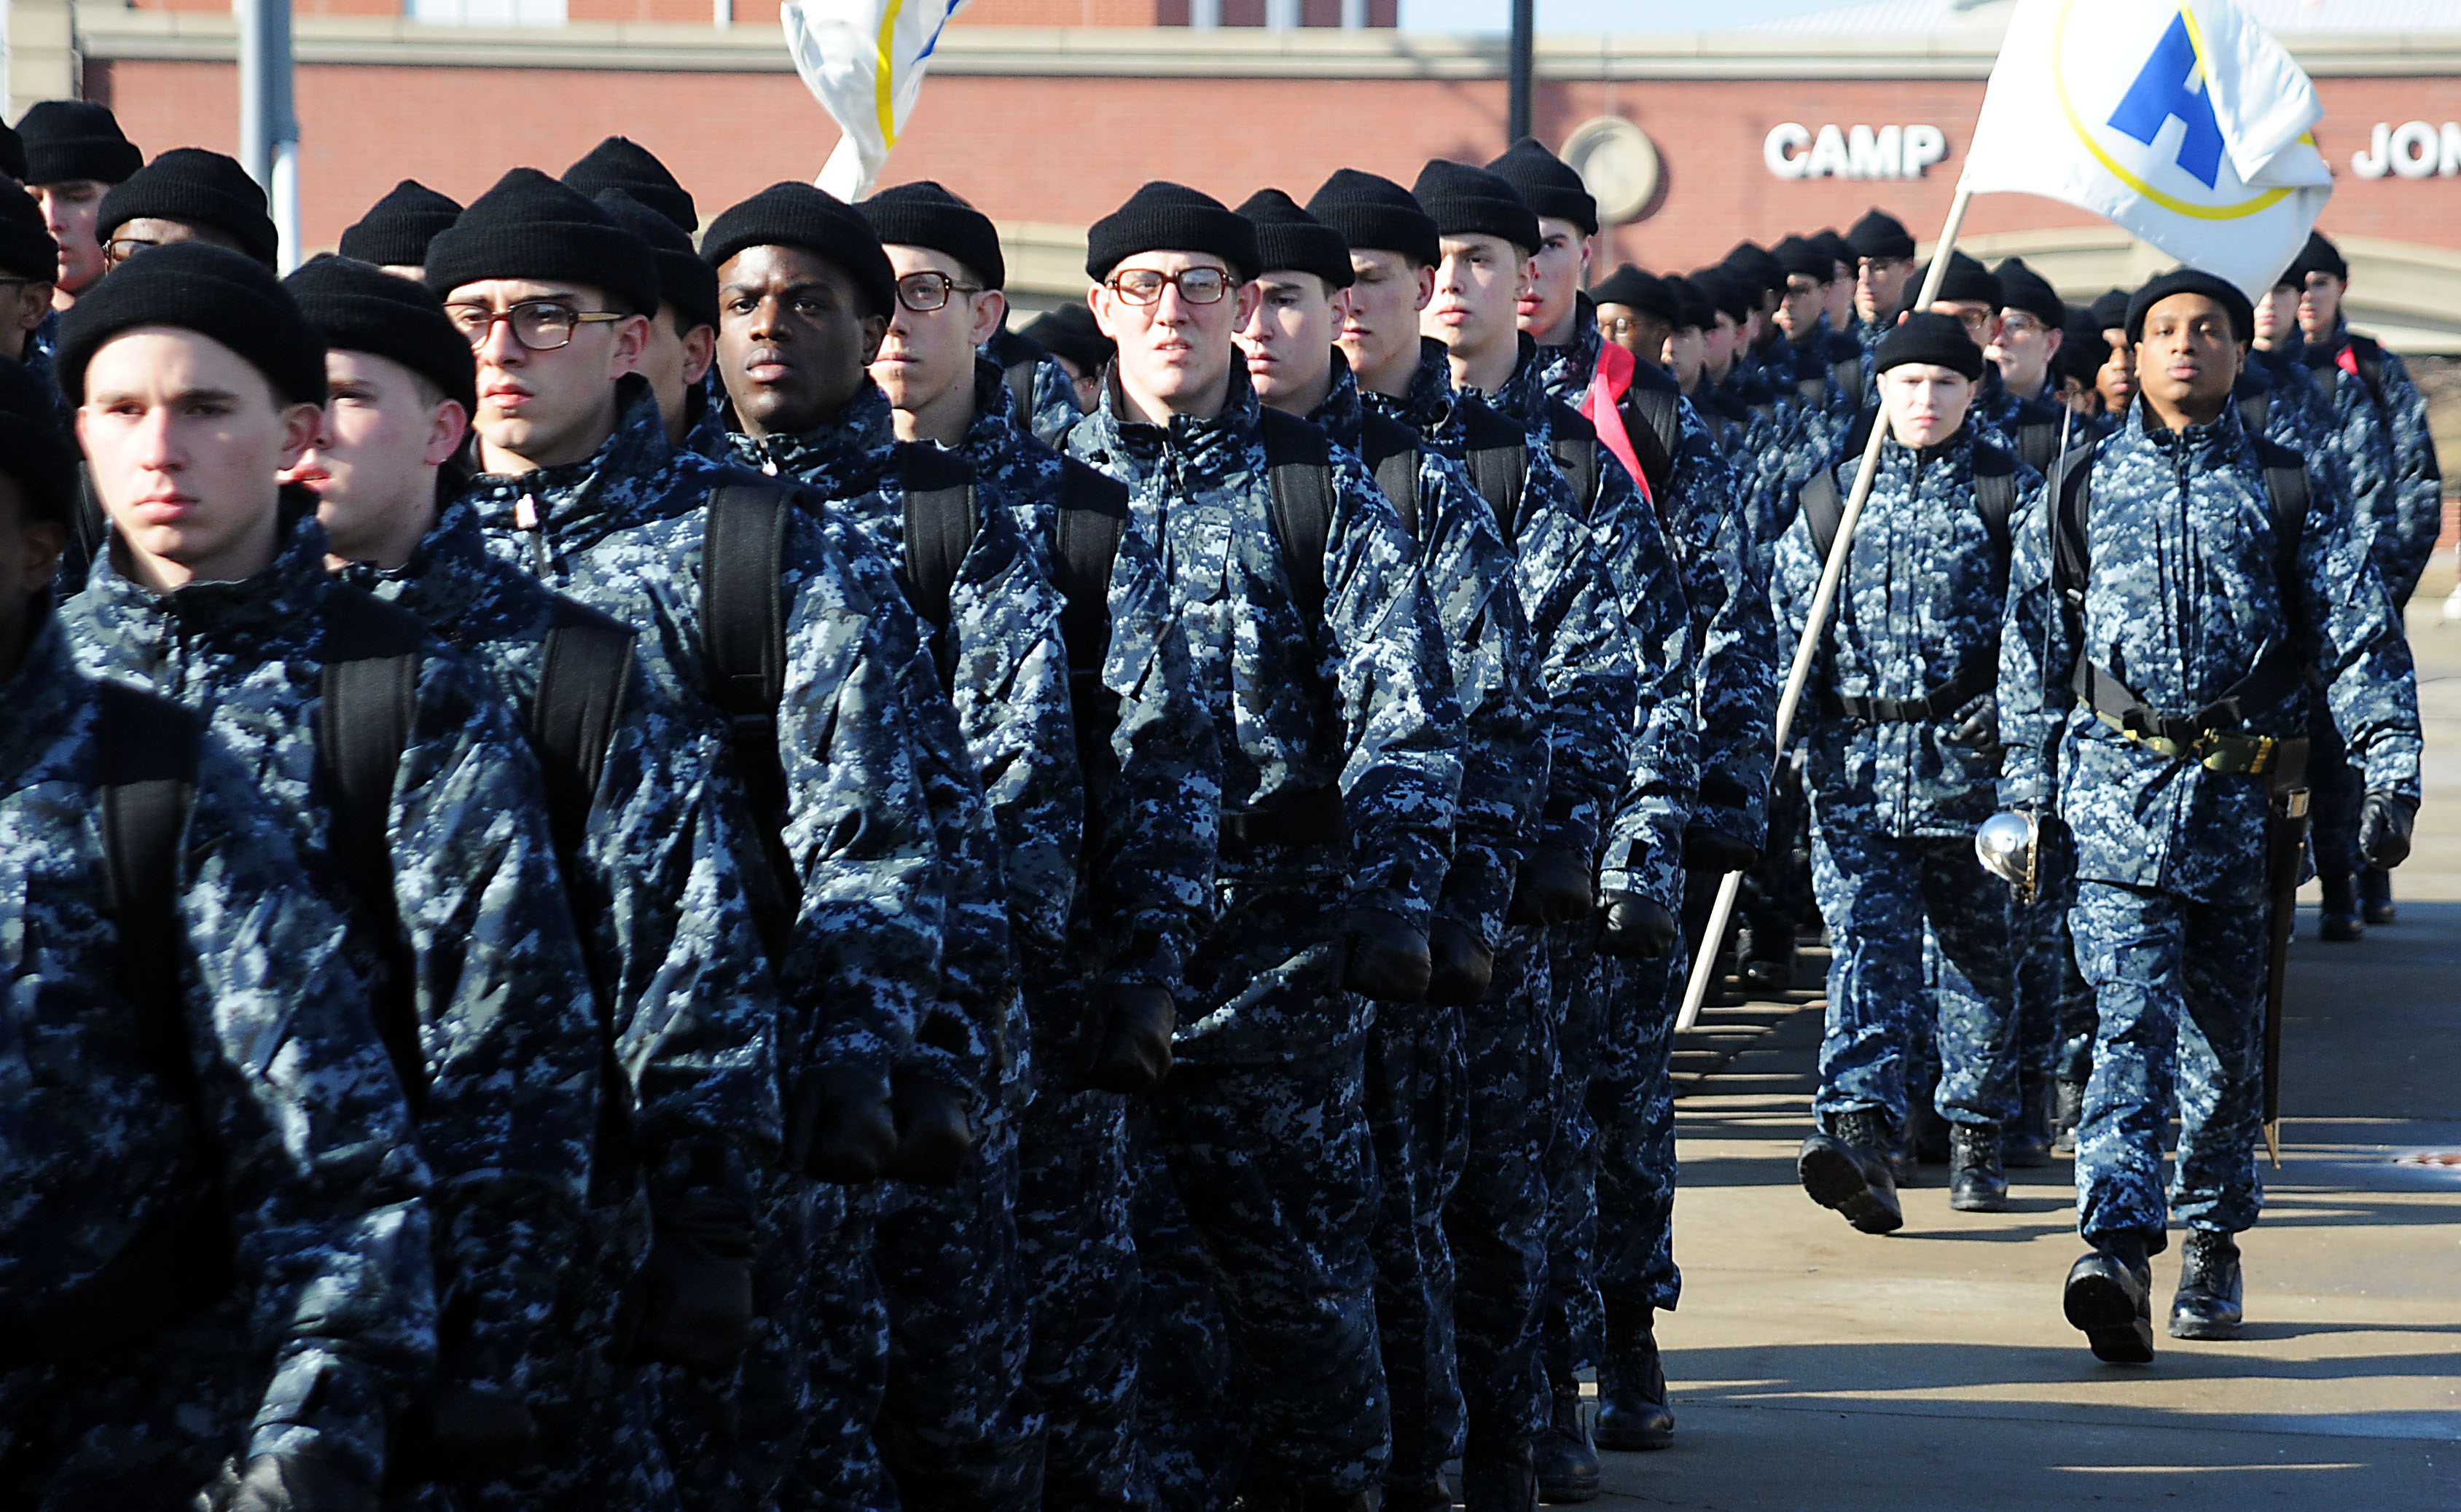 The Cadence Call of Faith in the Soldier's (and Sailor's